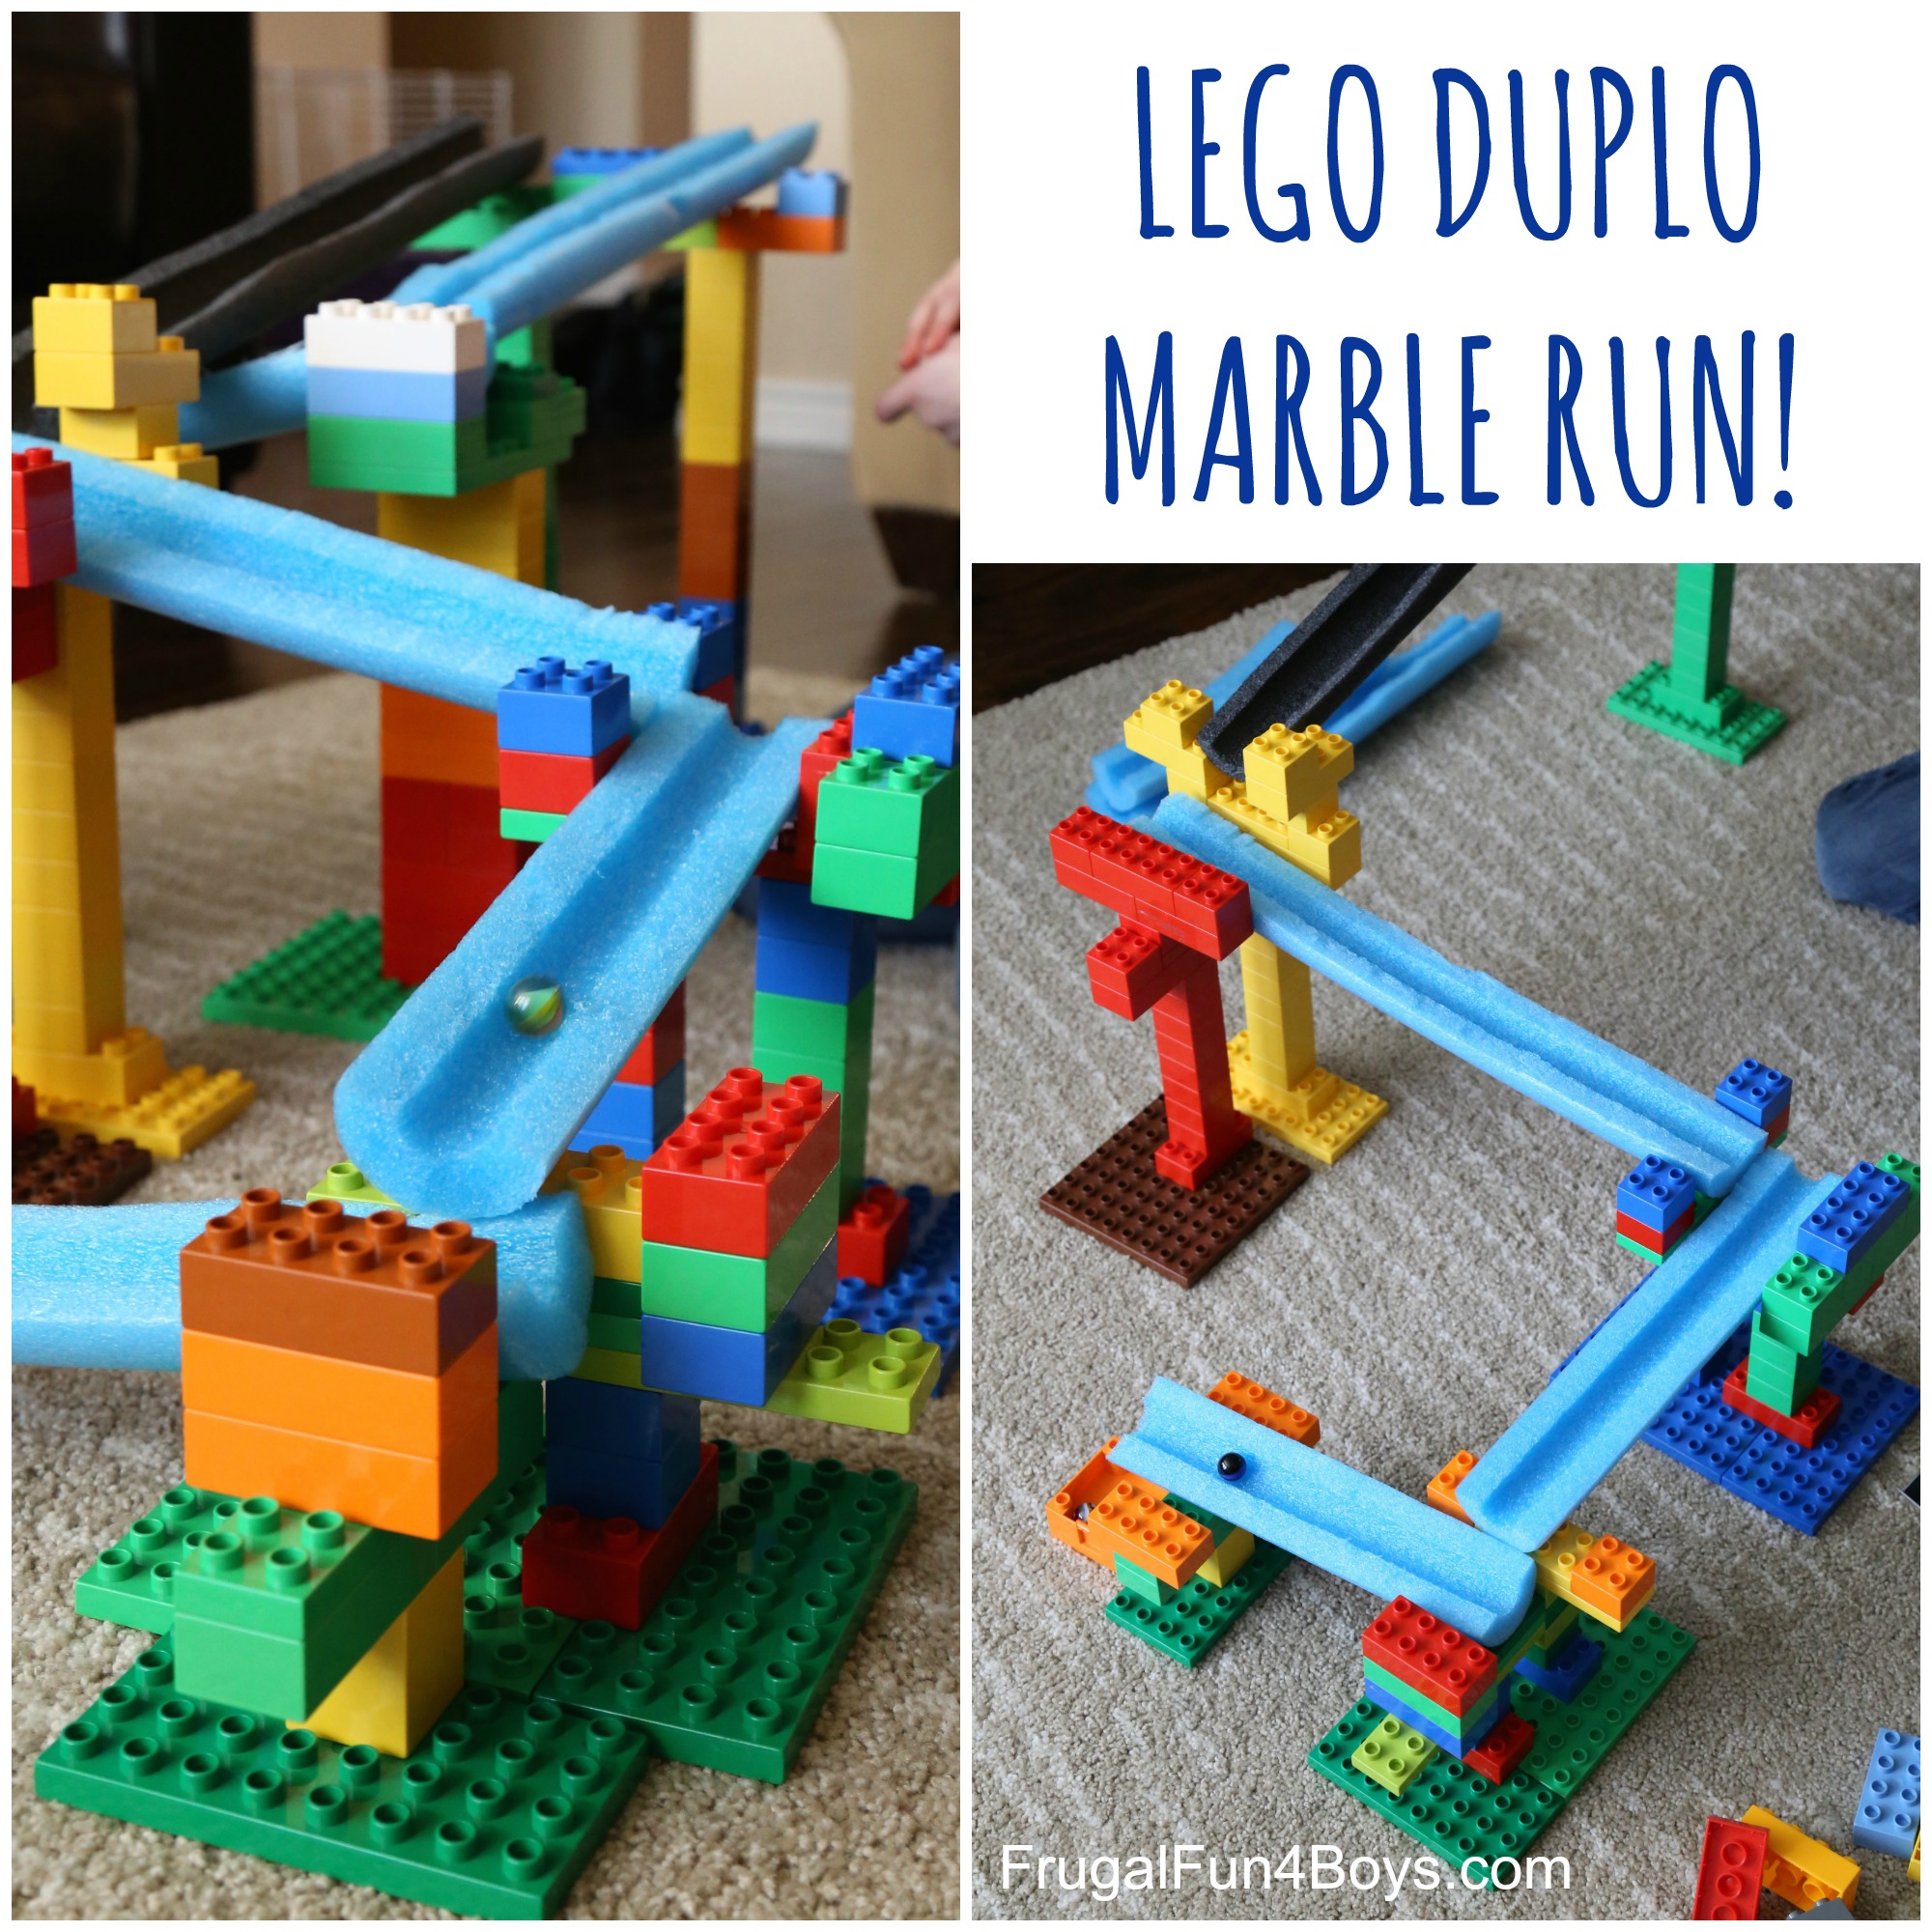 STEM Building Challenge for Kids: Engineer a LEGO Duplo and Pool Noodle Marble Run!